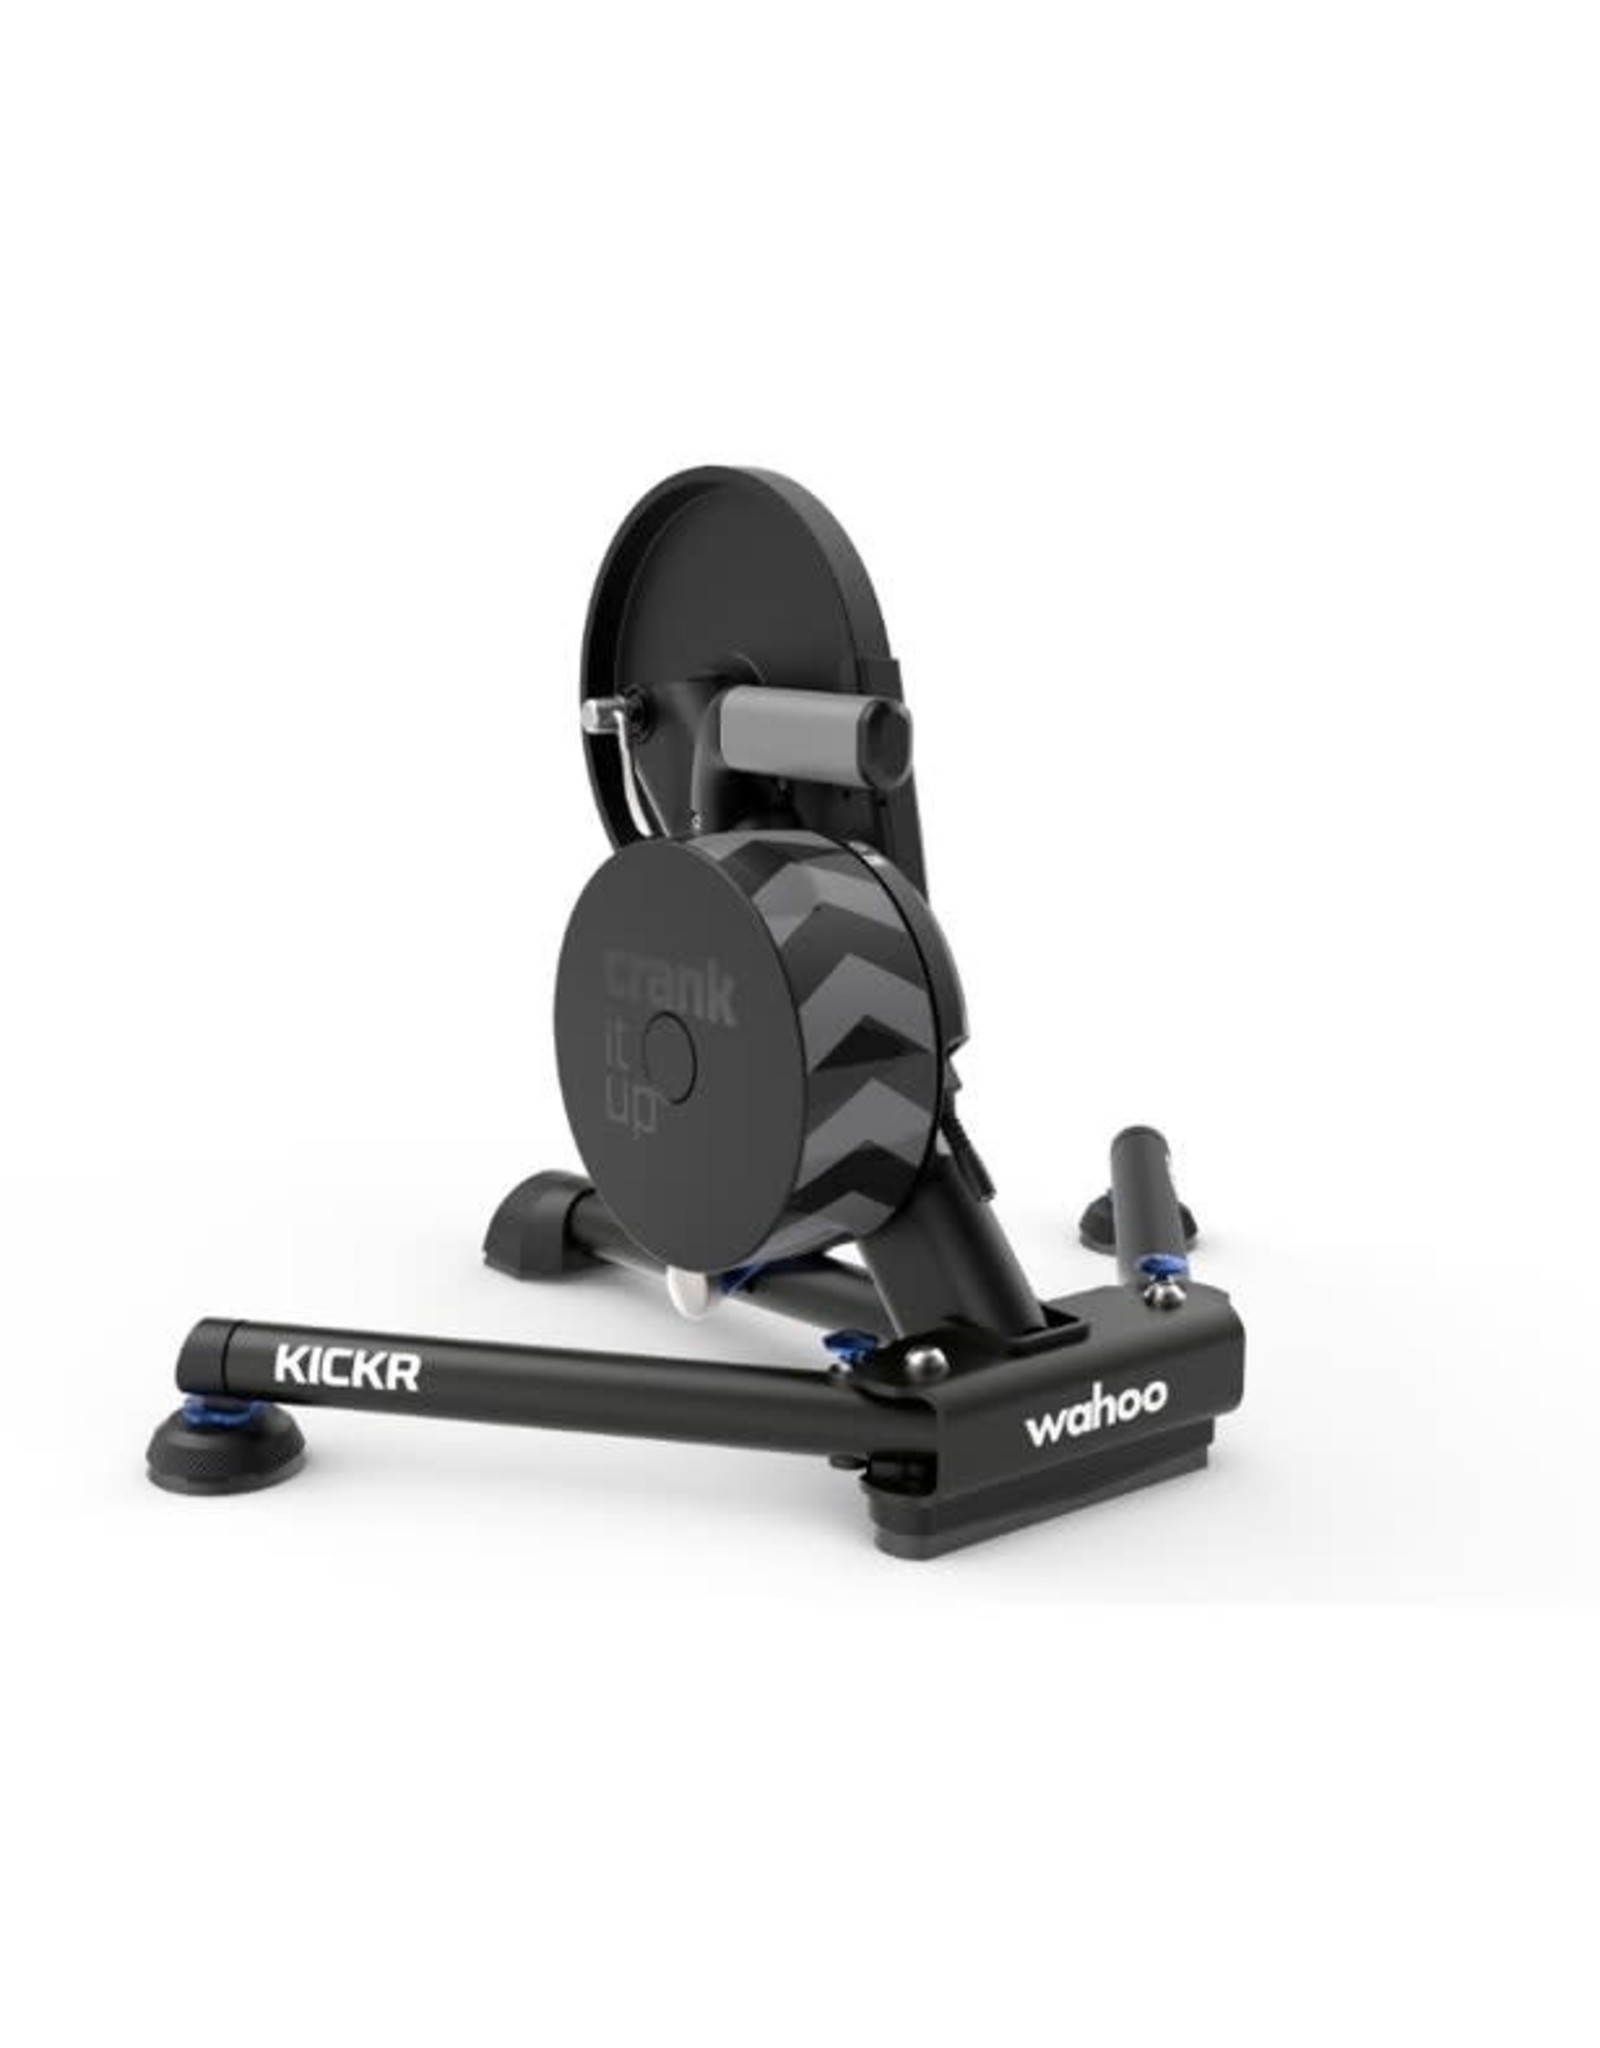 Wahoo Wahoo Kickr Smart Bike Trainer